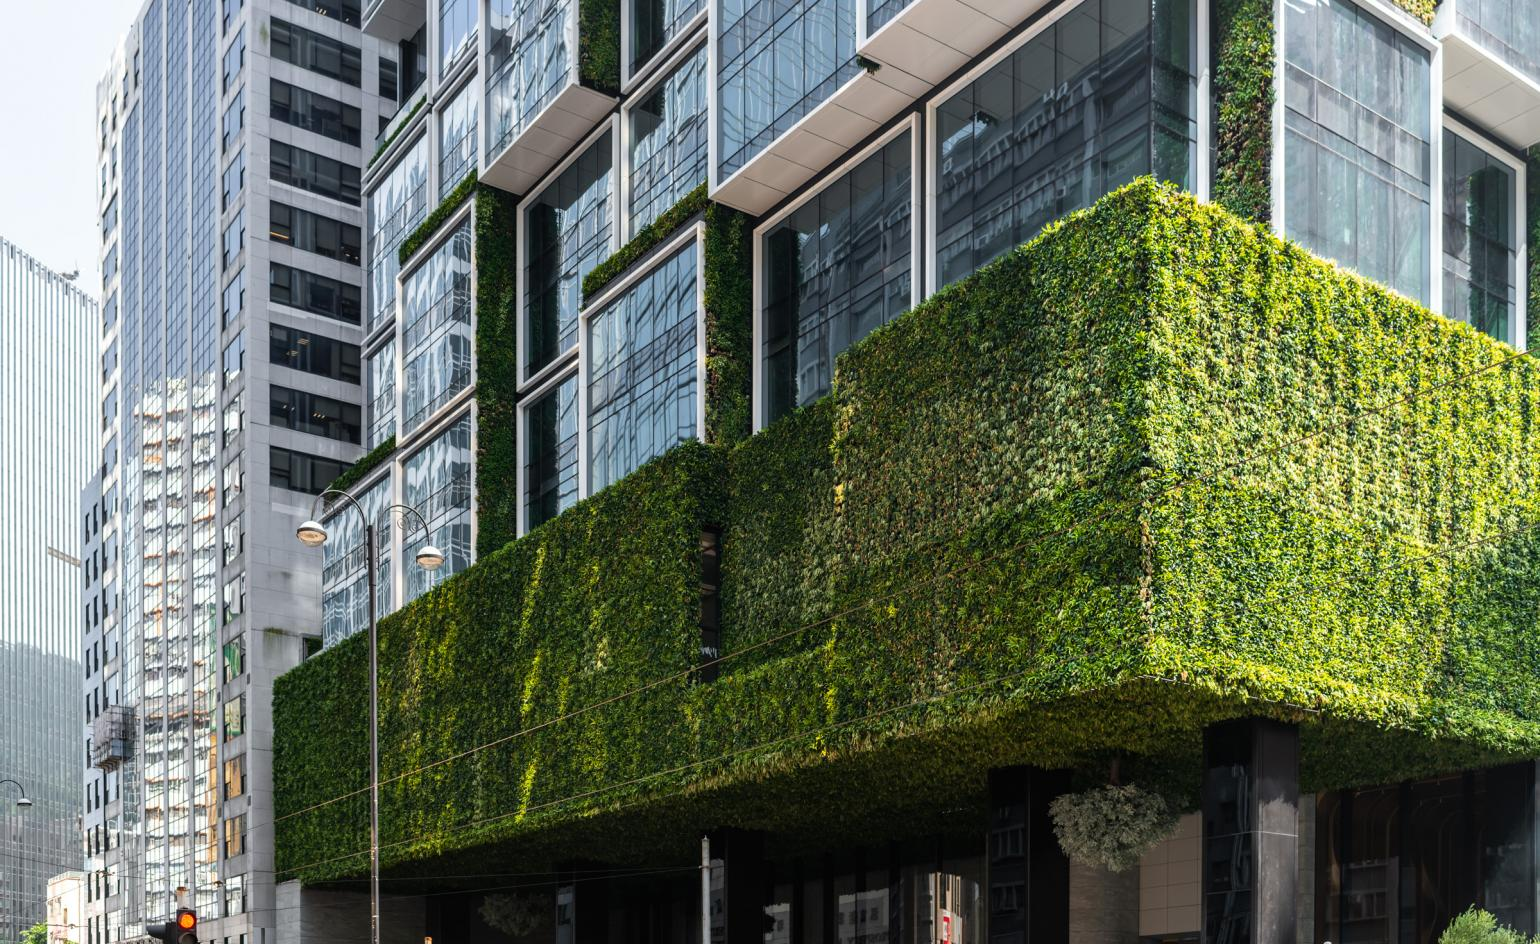 Rooftop farming, earth walls, and art: is this Hong Kong's most innovative office?